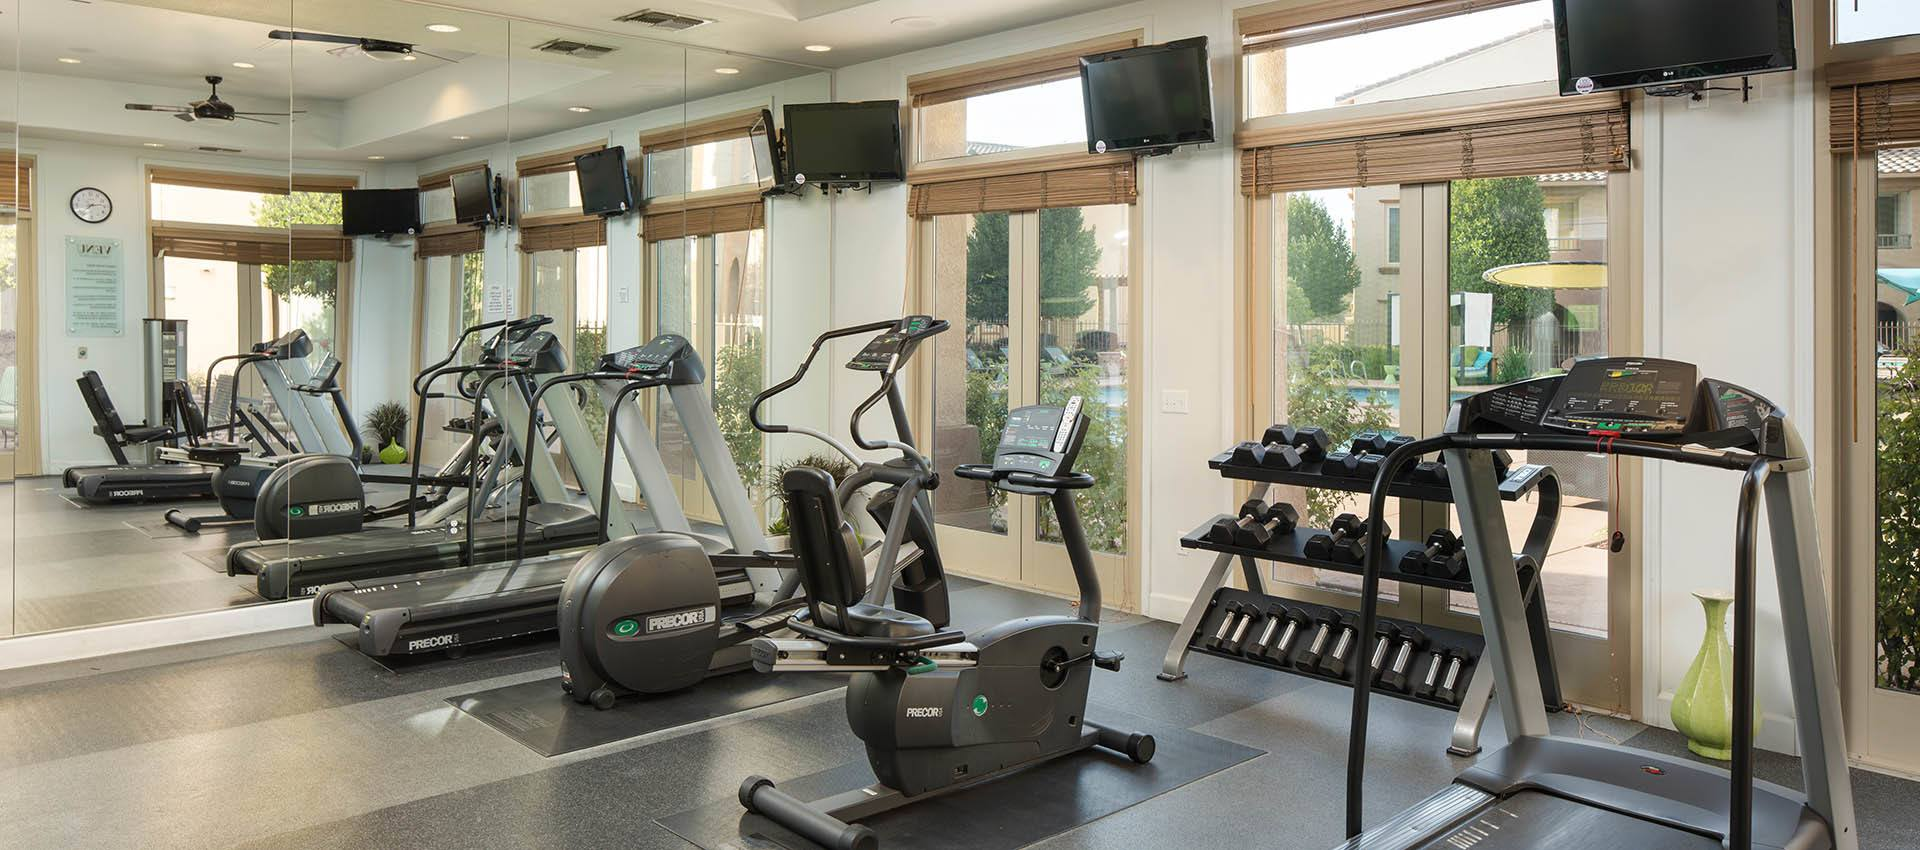 Fitness room at Venu at Galleria Condominium Rentals in Roseville, California